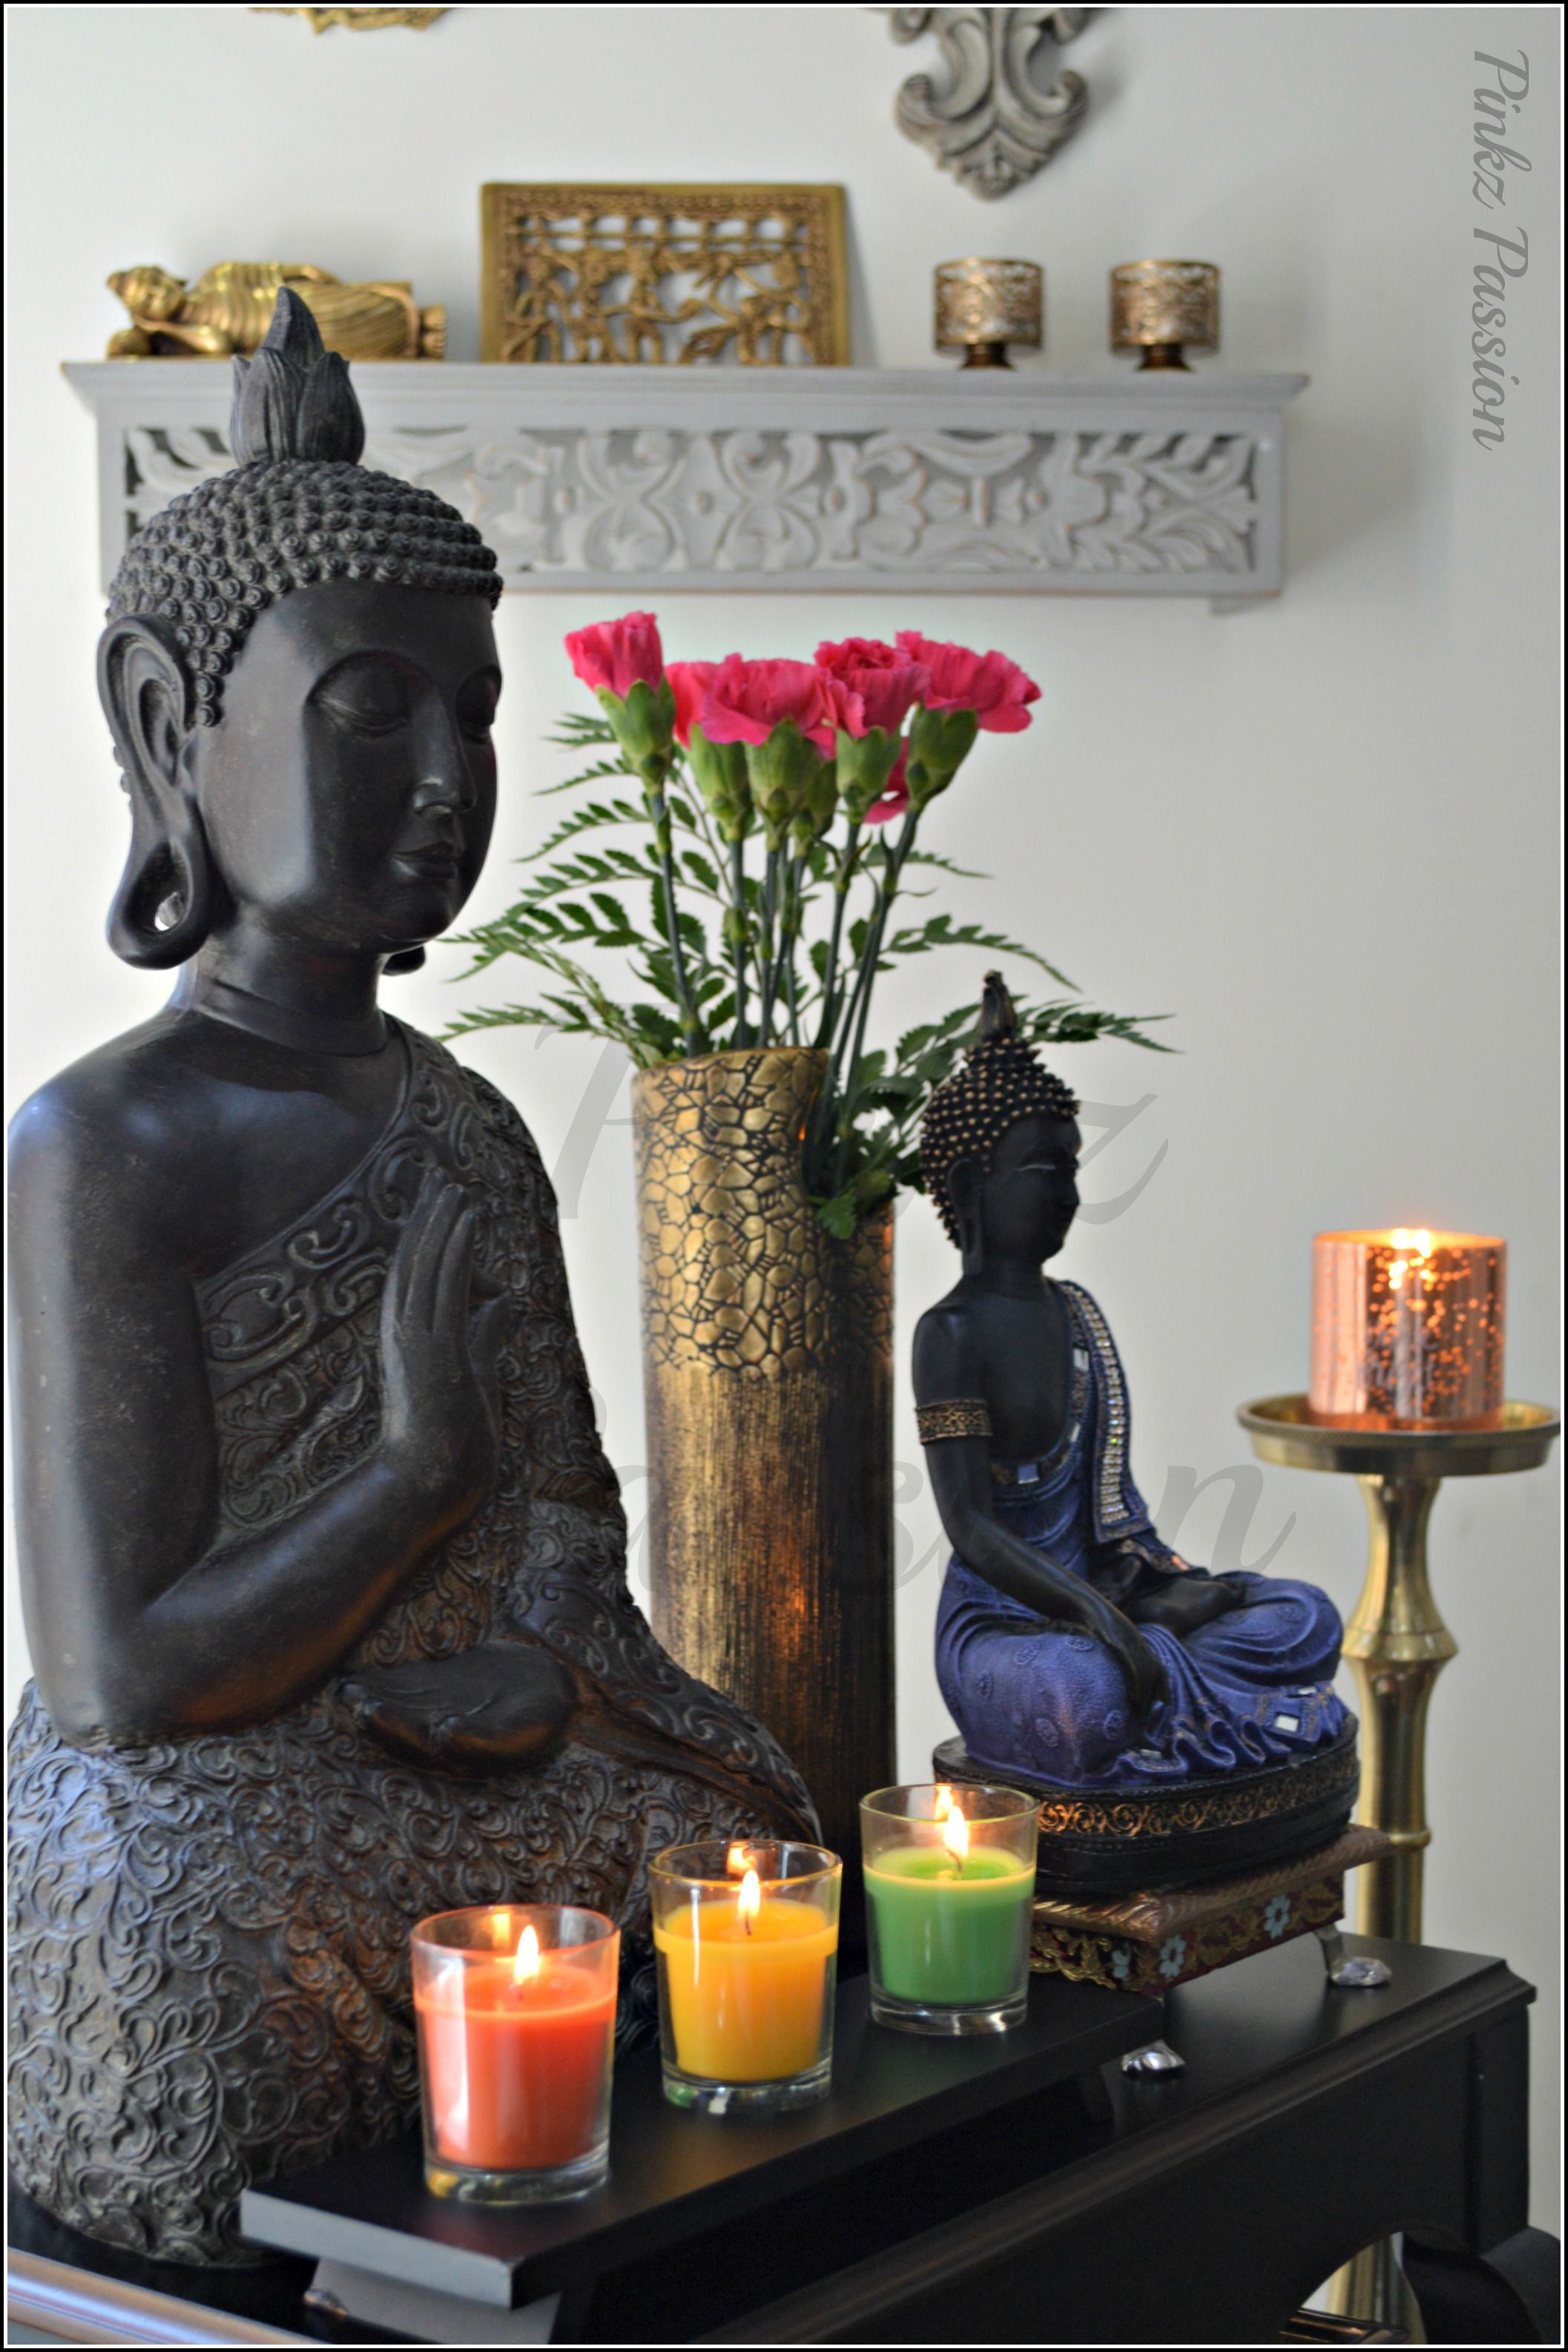 Buddha Decor Buddha Vignette Calming Vignette Serene Buddha Buddha Statues Indian Decor Buddha Decor Buddha Home Decor Buddha Living Room